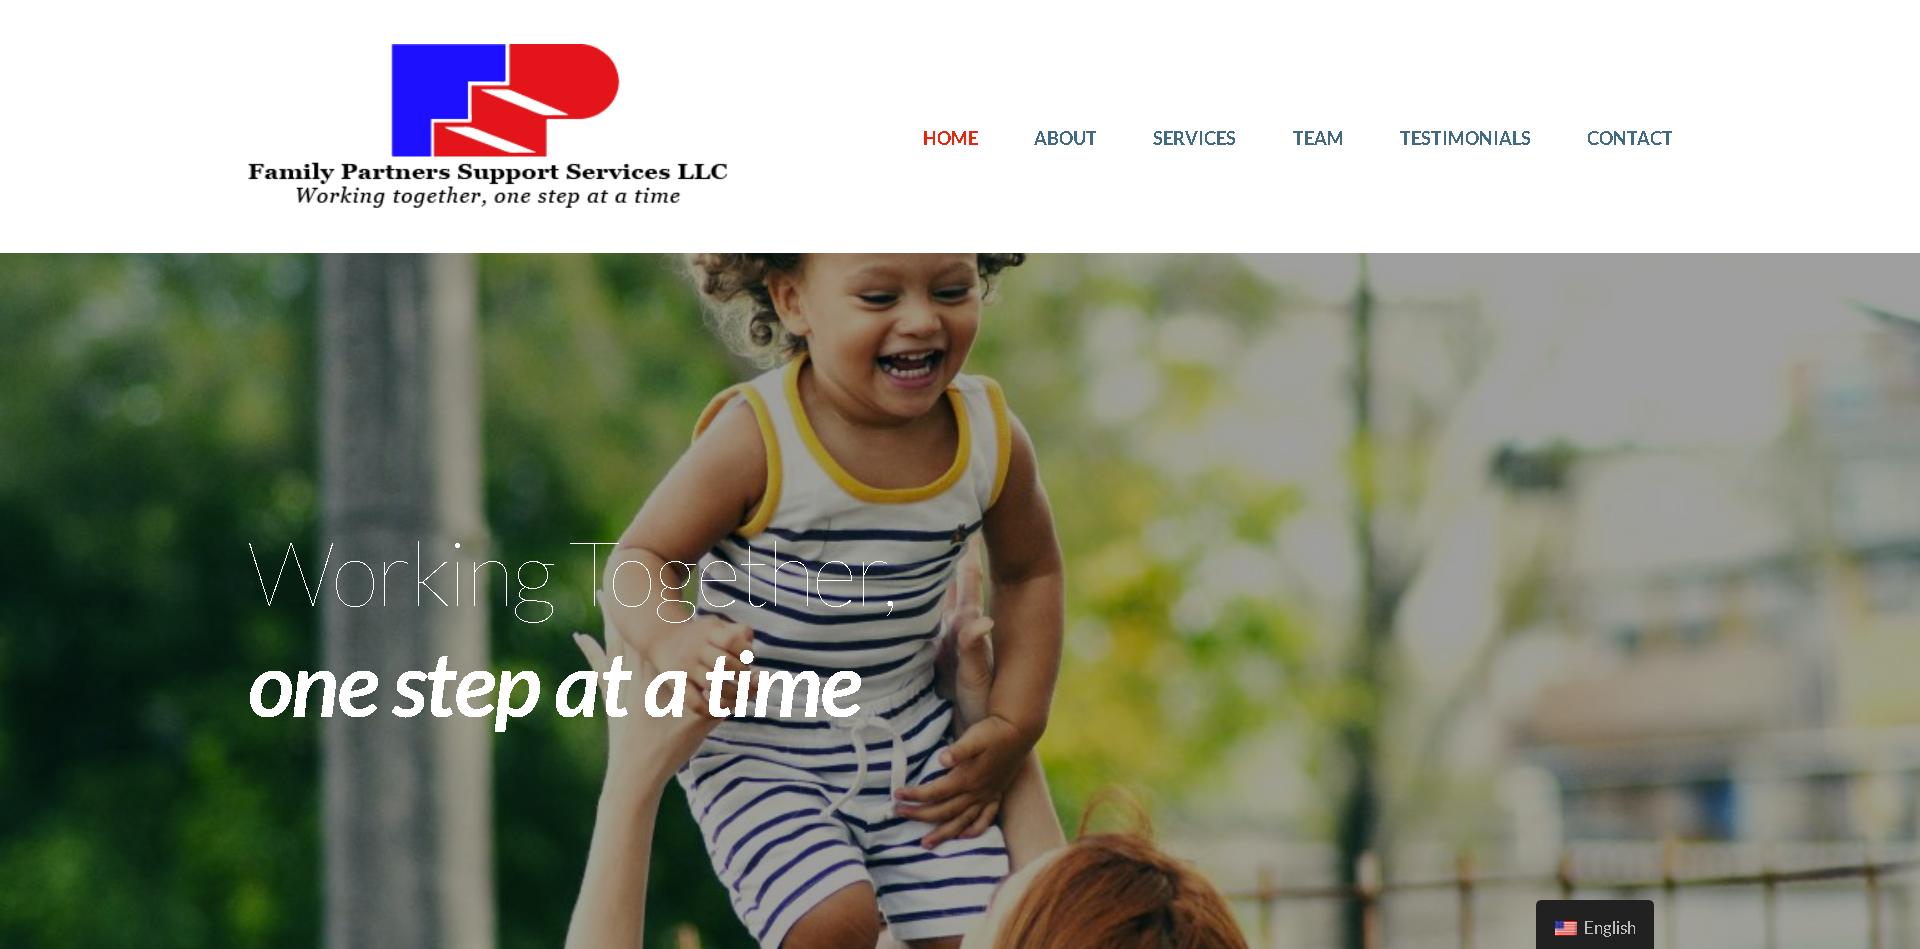 Screenshot: Family Partners Support Services LLC homepage